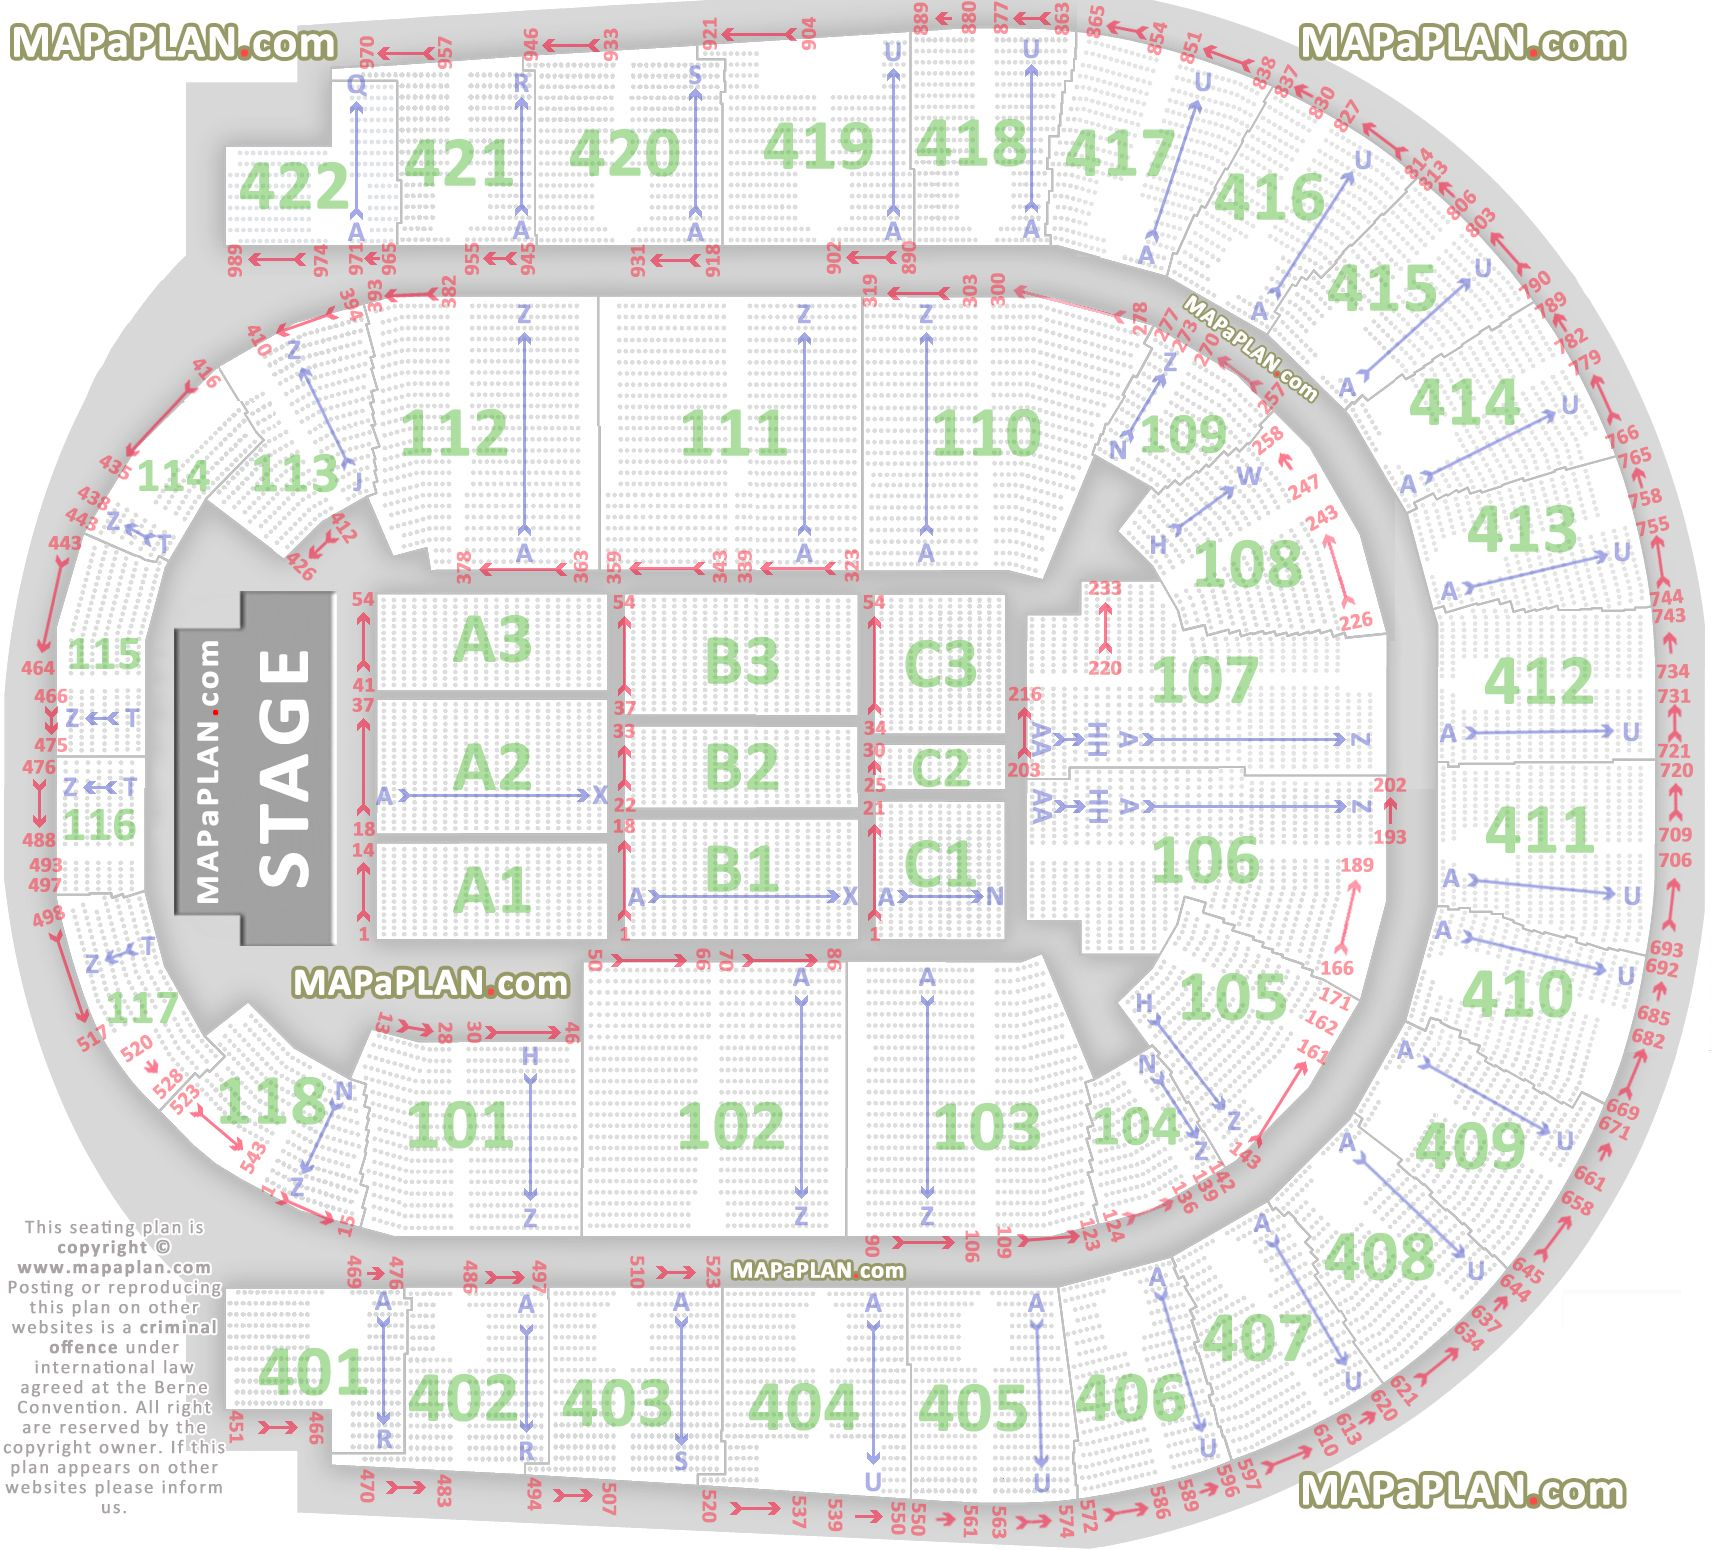 Nec Birmingham Floor Plan The O2 Arena London Seating Plan Detailed Seats Rows And